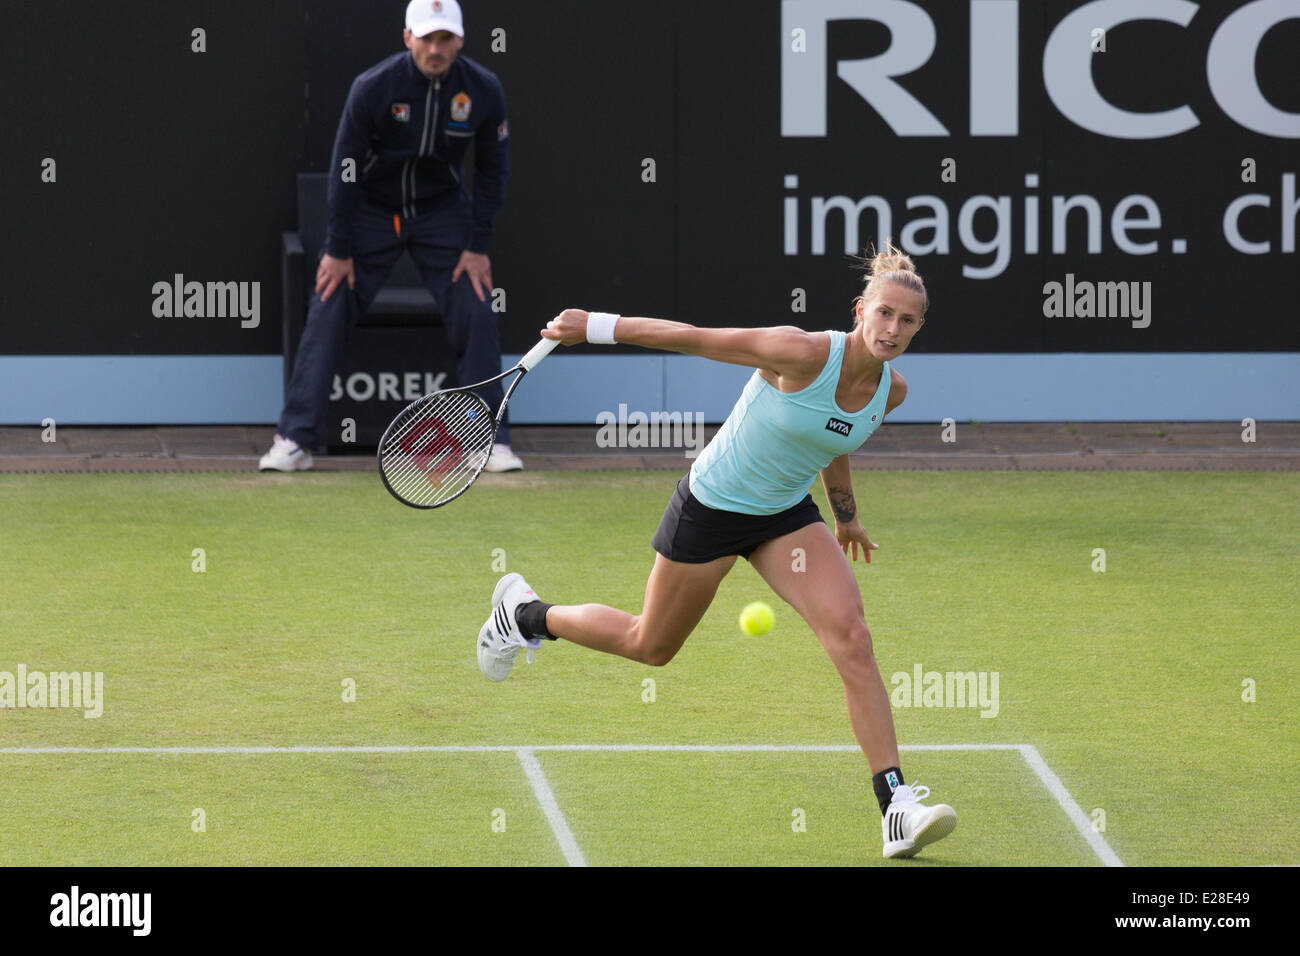 Polona hercog slo in action at the wta topshelf open tennis championships at autotron